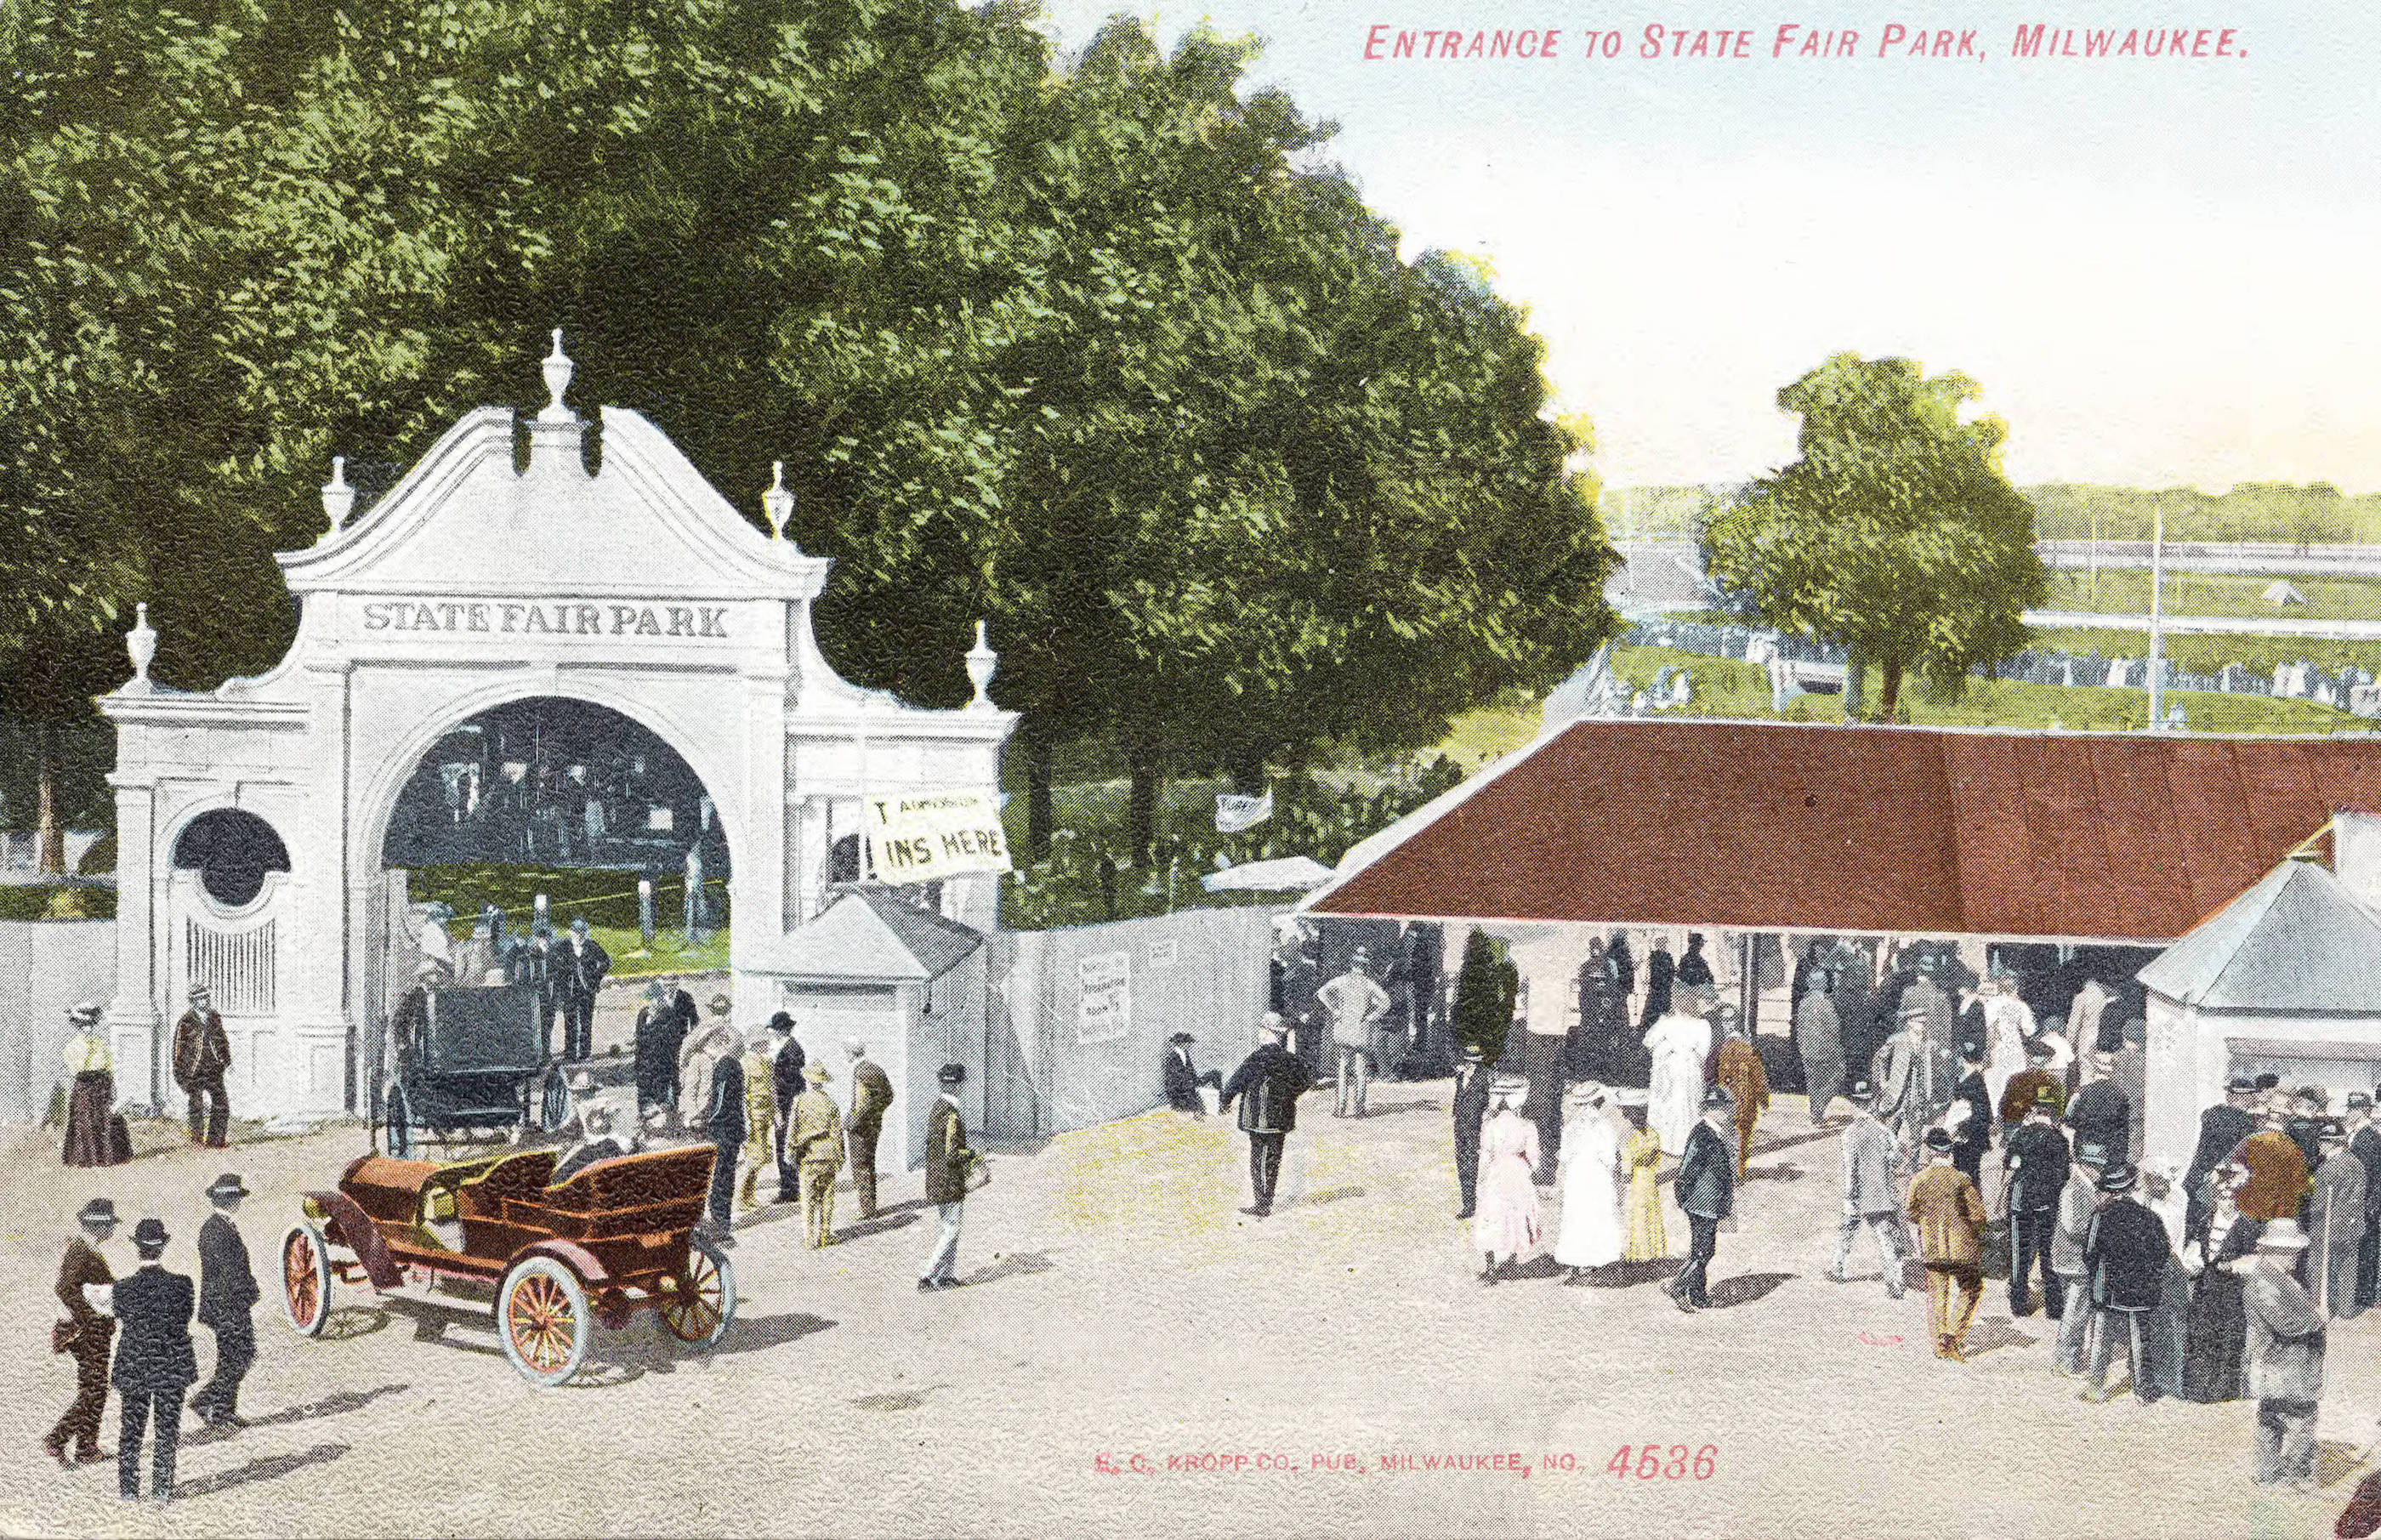 Visitors enter State Fair Park in West Allis in the early 20th century.